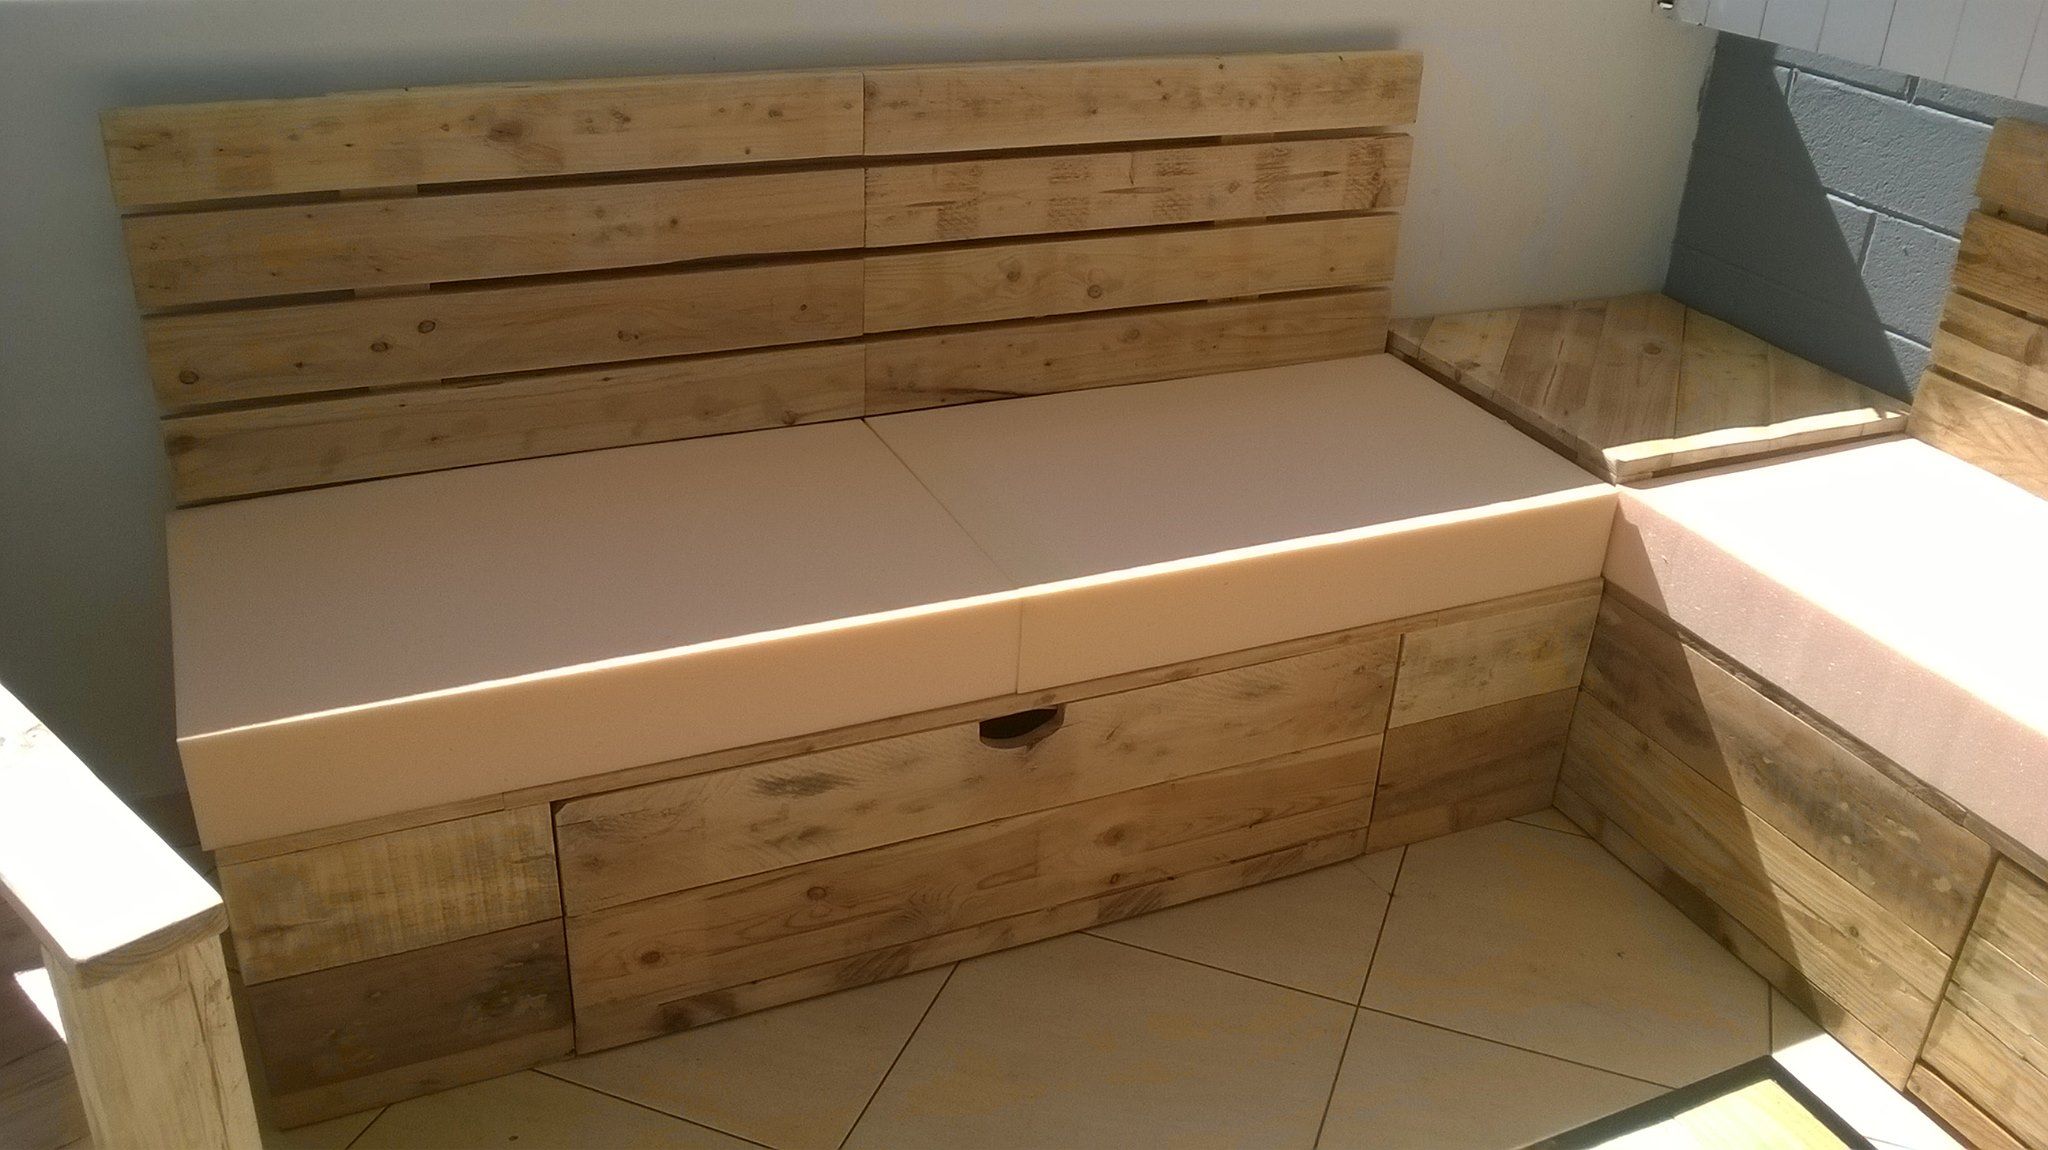 Meubles Palettes Salon  Pallet Ideas Recycled  Upcycled Pallets Furniture  -> Meuble Palette